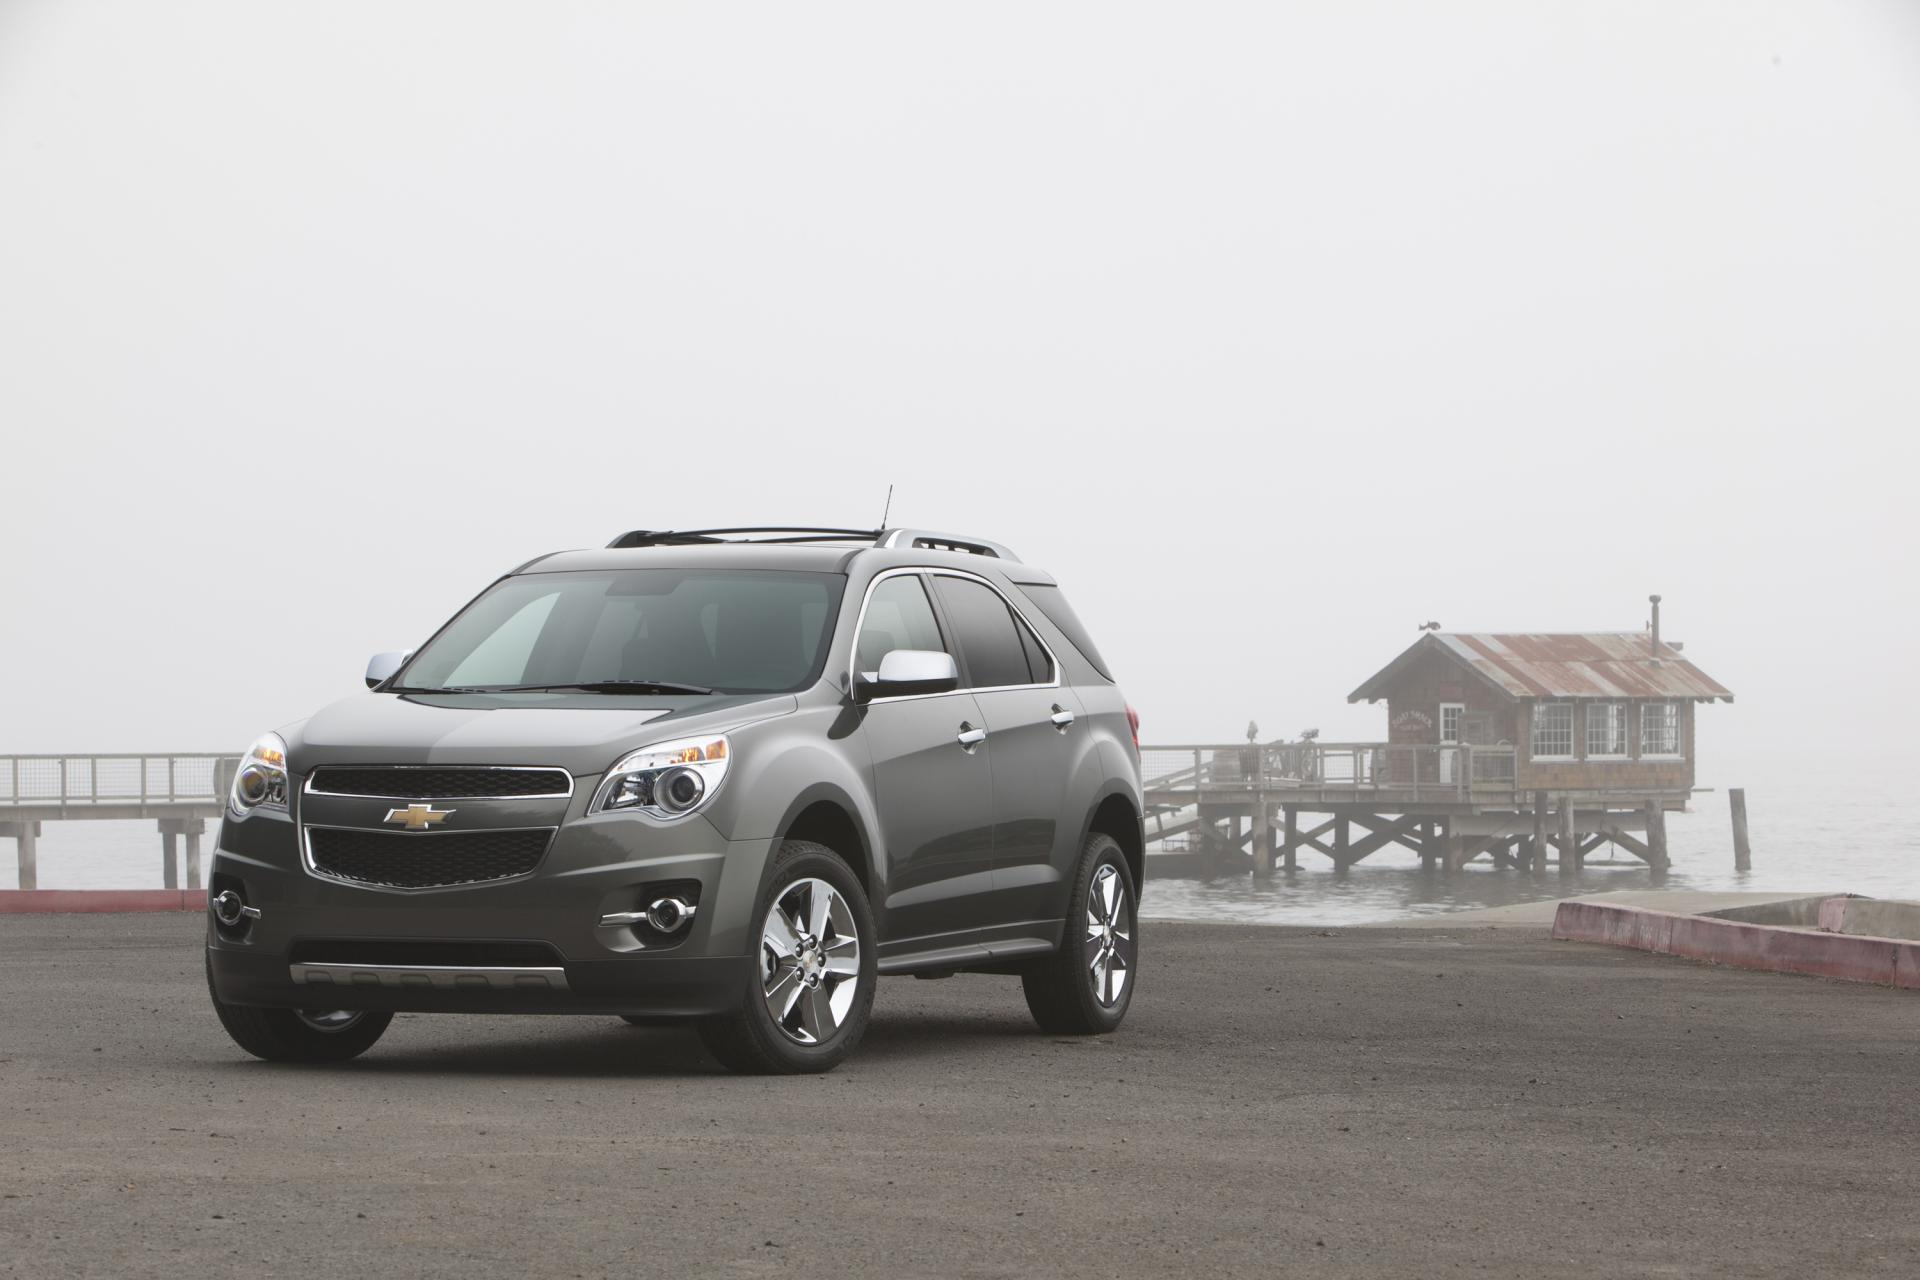 2014 chevrolet equinox. Black Bedroom Furniture Sets. Home Design Ideas